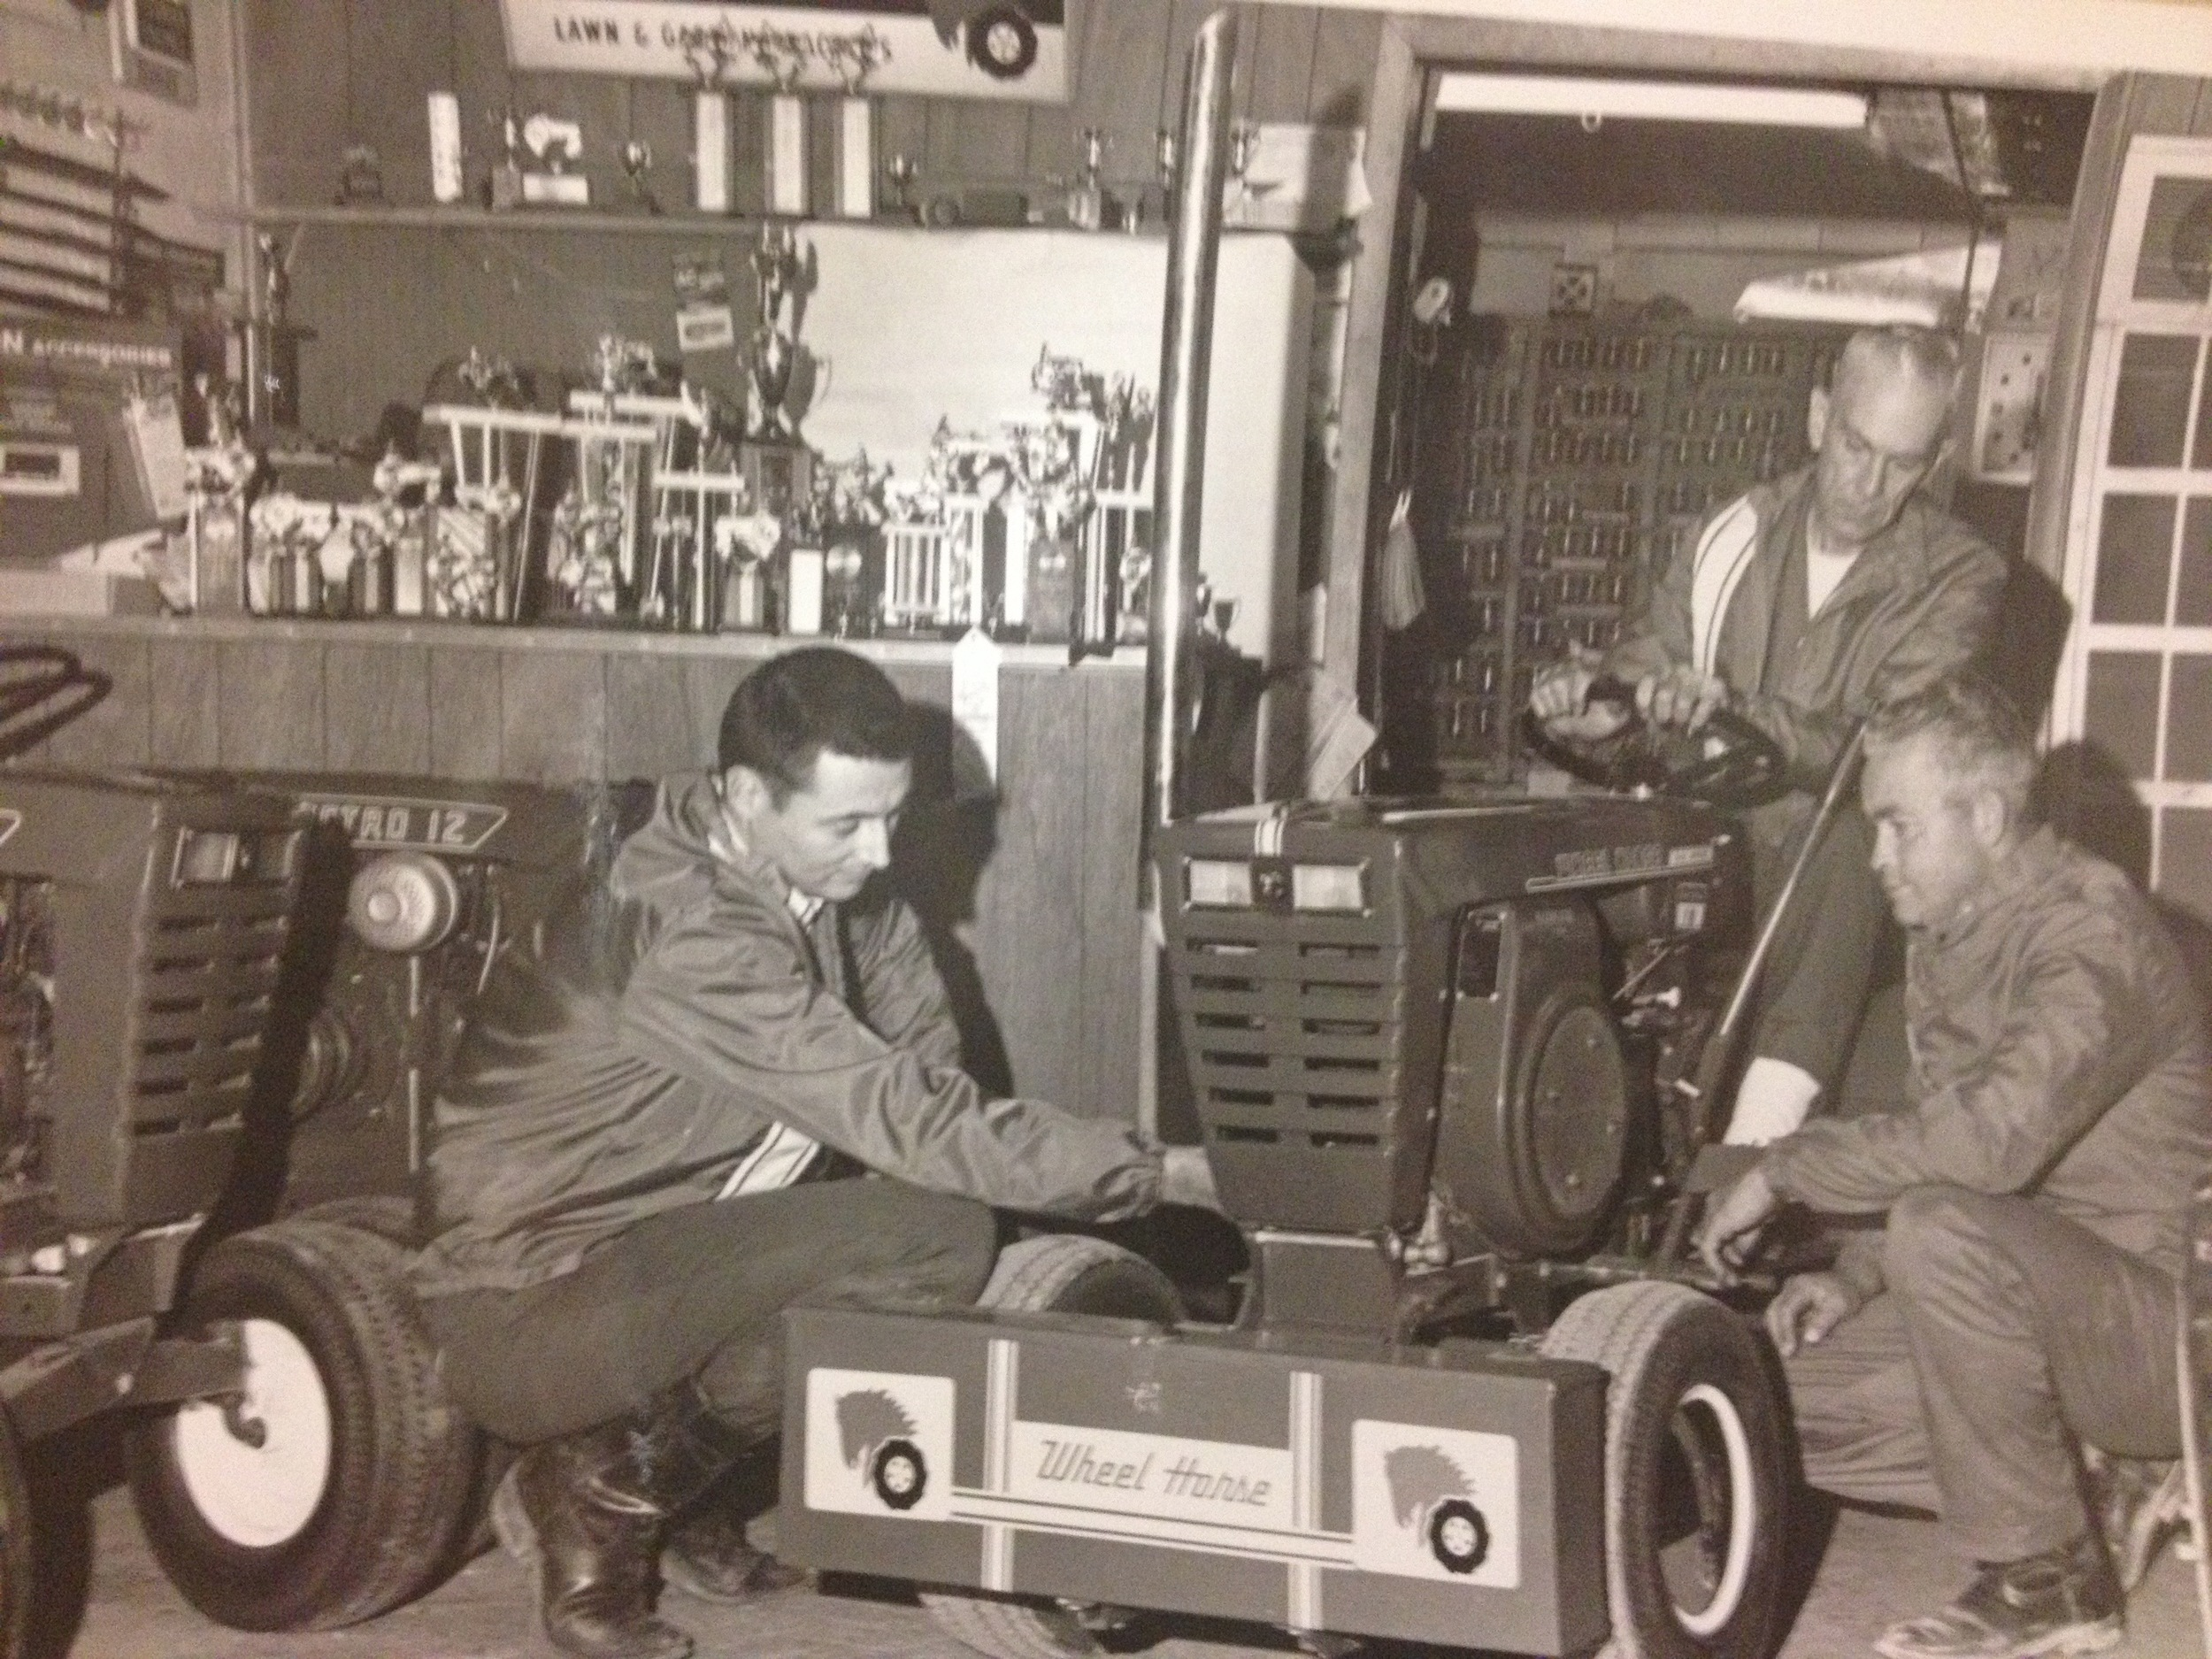 Phil Humphreys, Woody Porter (seated) and George York working in the Humphreys' Wheel Horse show room on Phil's hobby at the time, Garden Tractor pulling.